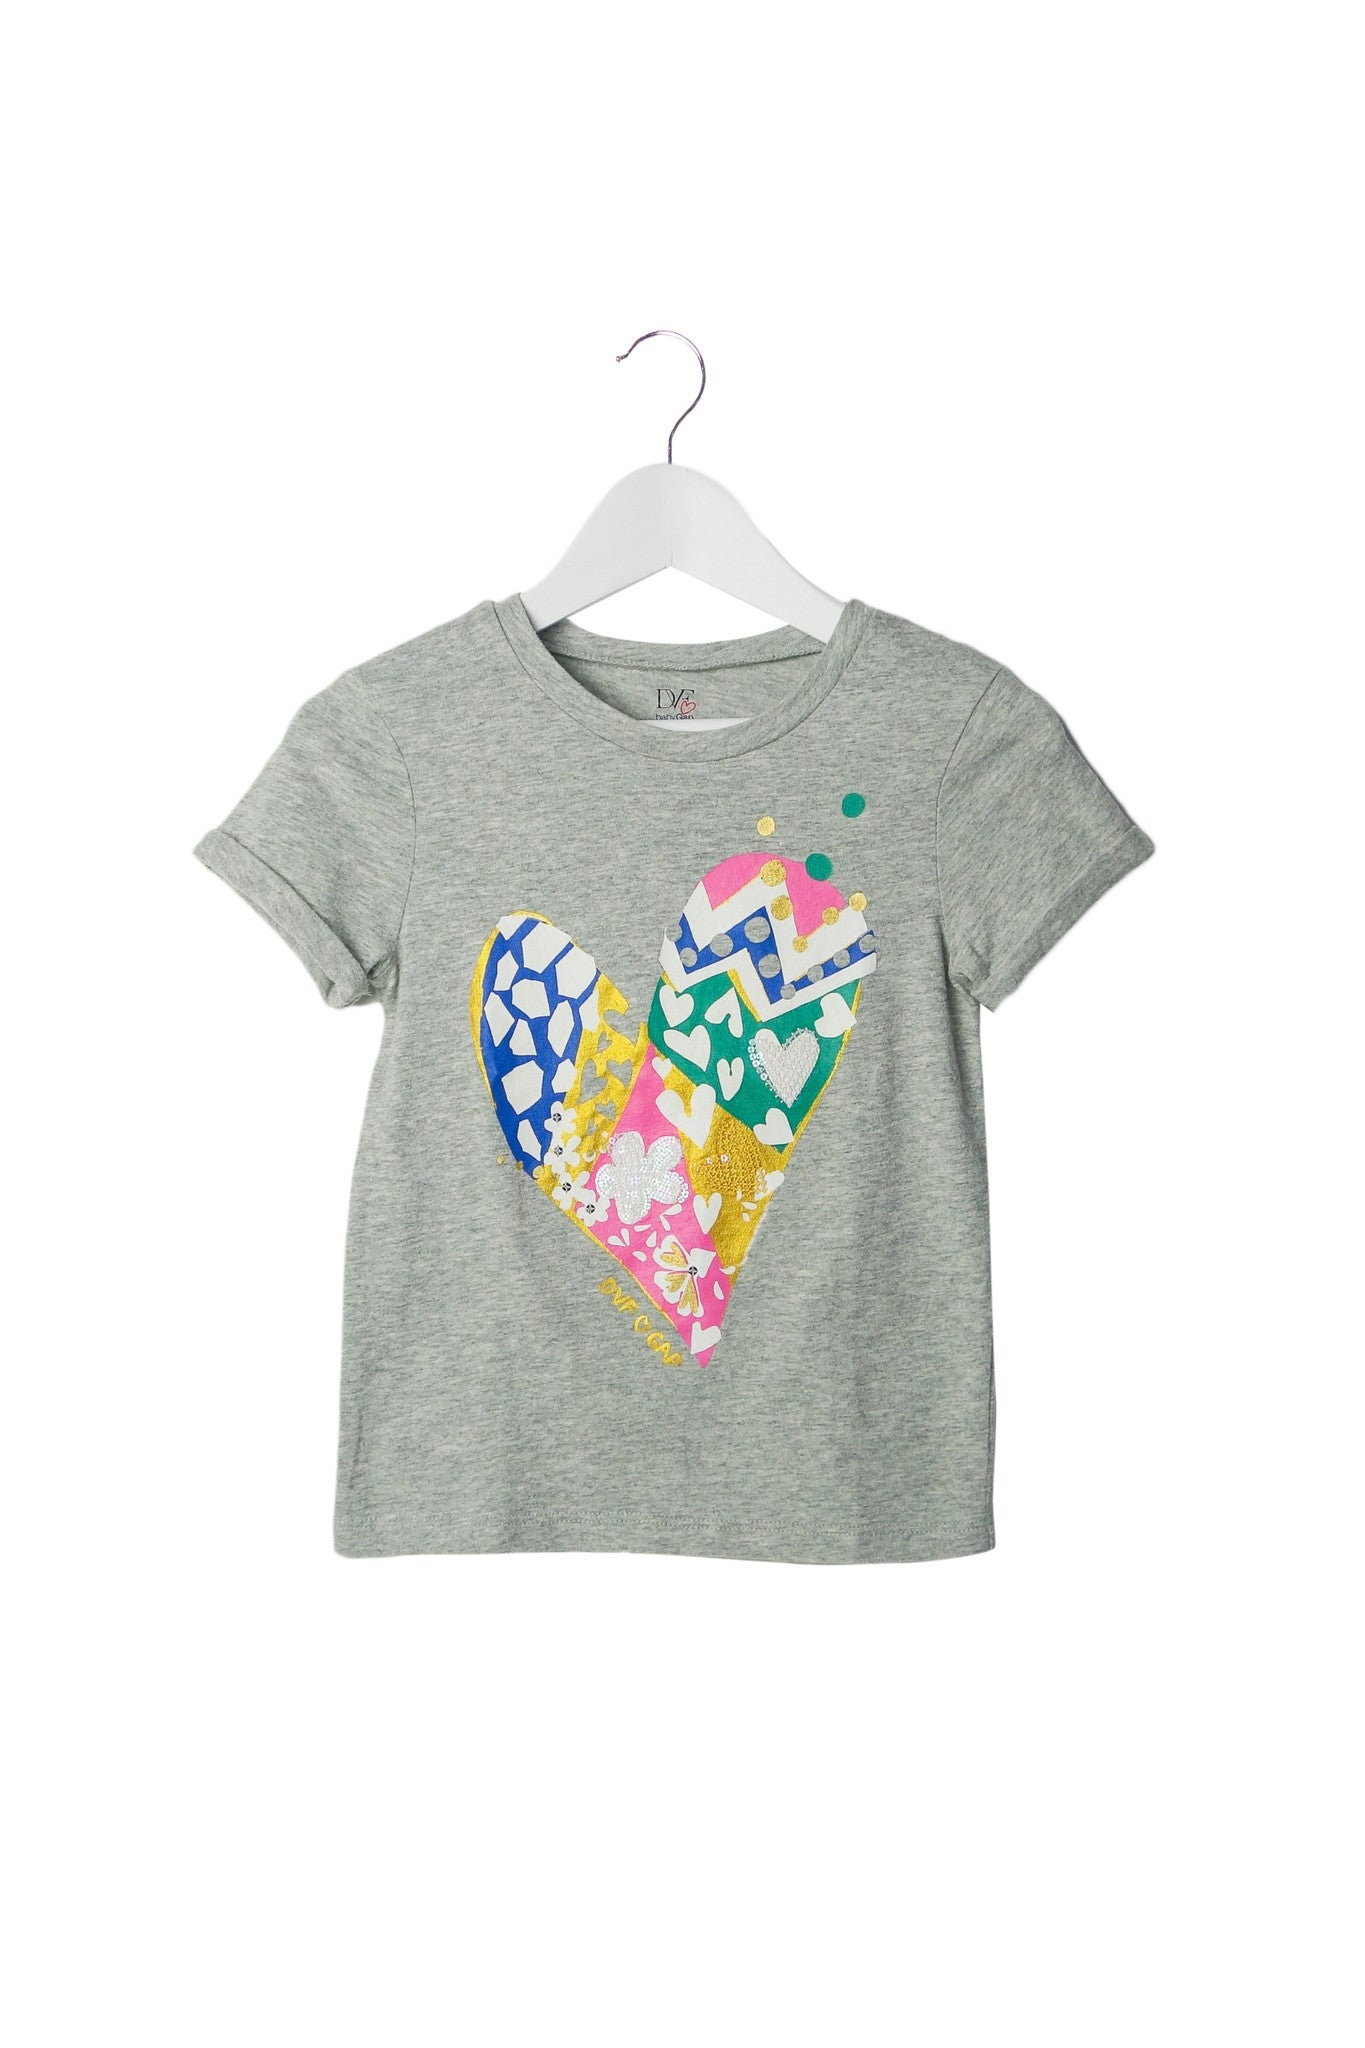 10003069 DVF Gap Kids~T-Shirt 4T at Retykle